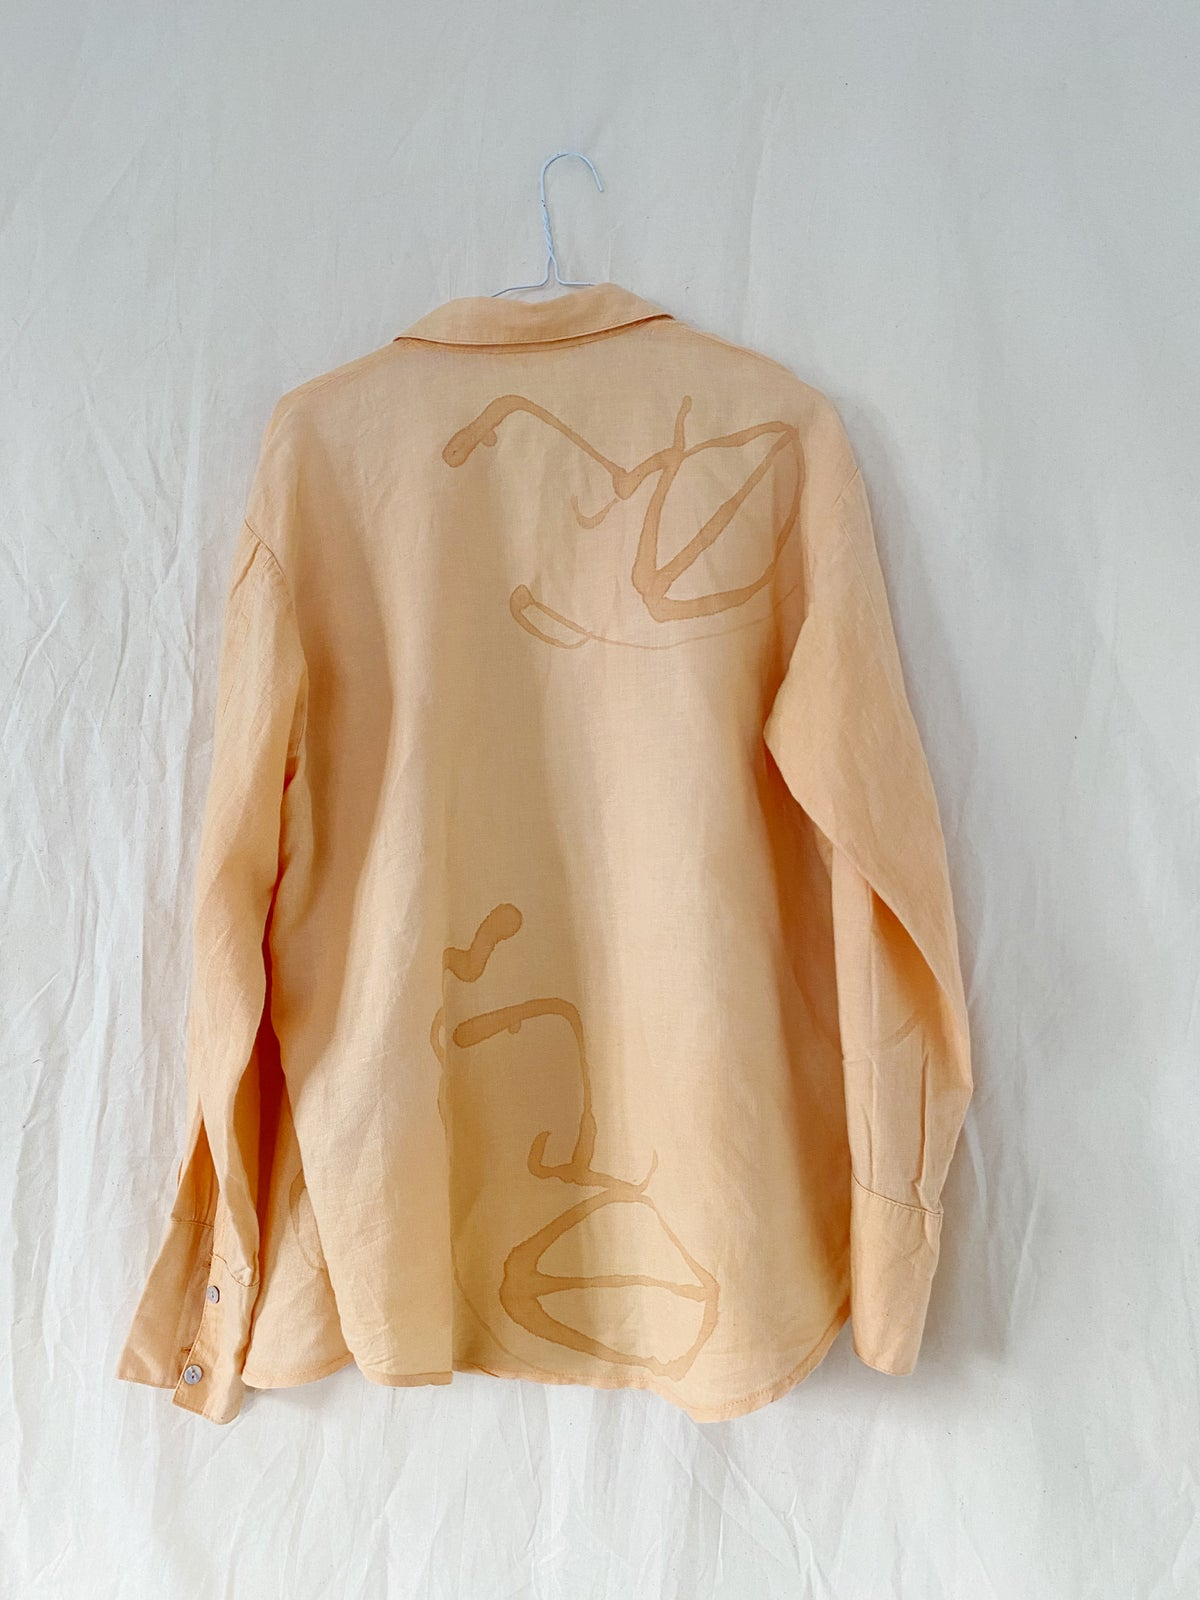 Image of peachy peachy shirt